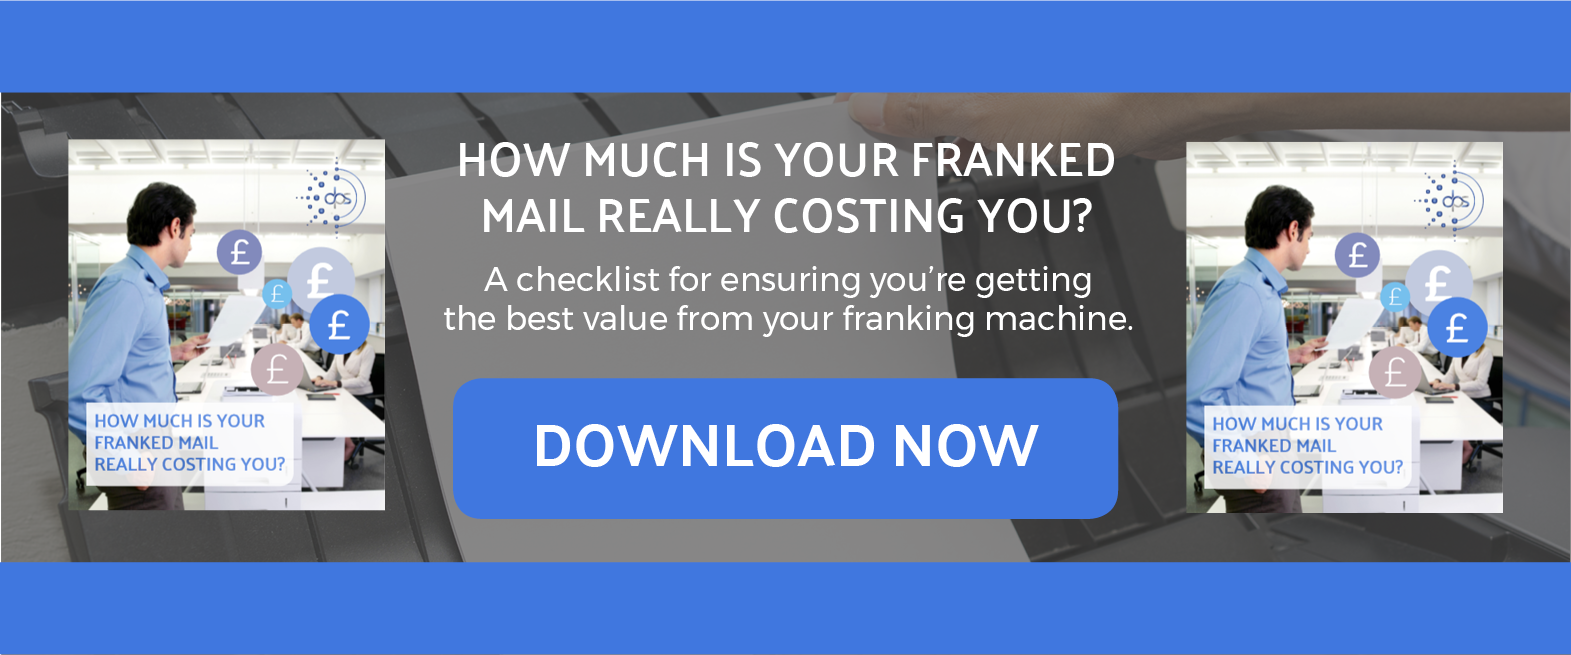 Dps postal services copiers franking machines supplier fandeluxe Images